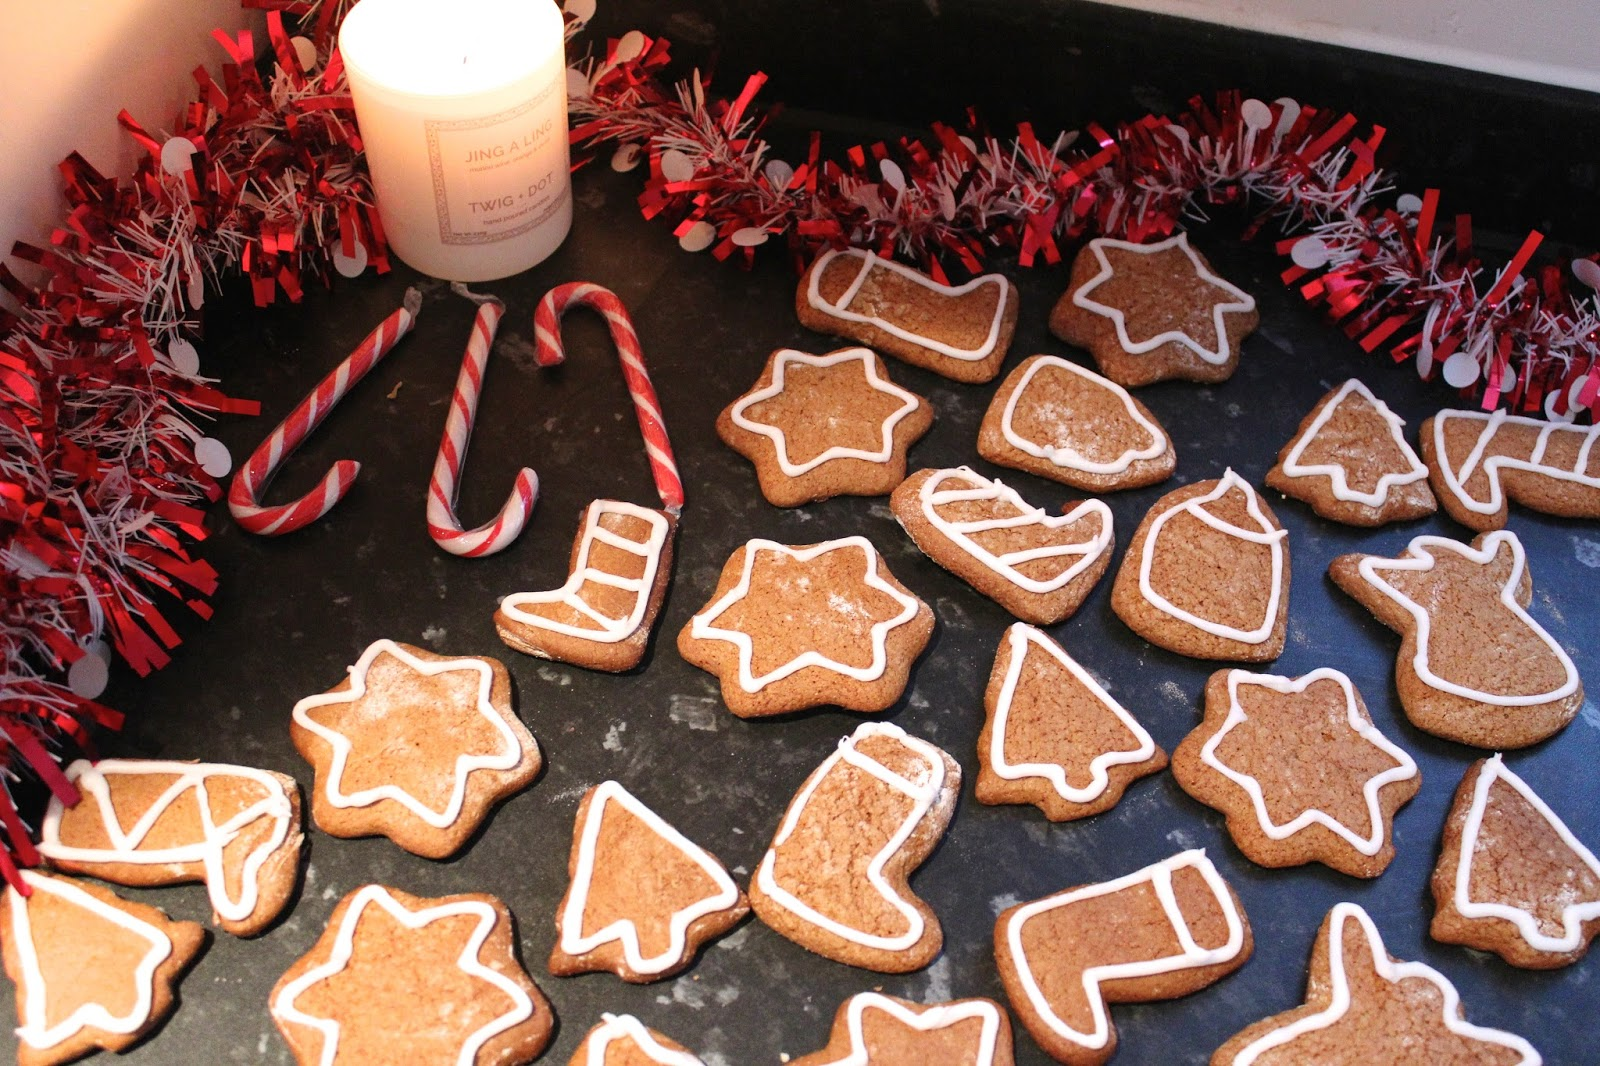 blog blogger bbloggers christmas baking festive gingerbread recipe vlog youtuber youtuber youtubers kirstie pickering video